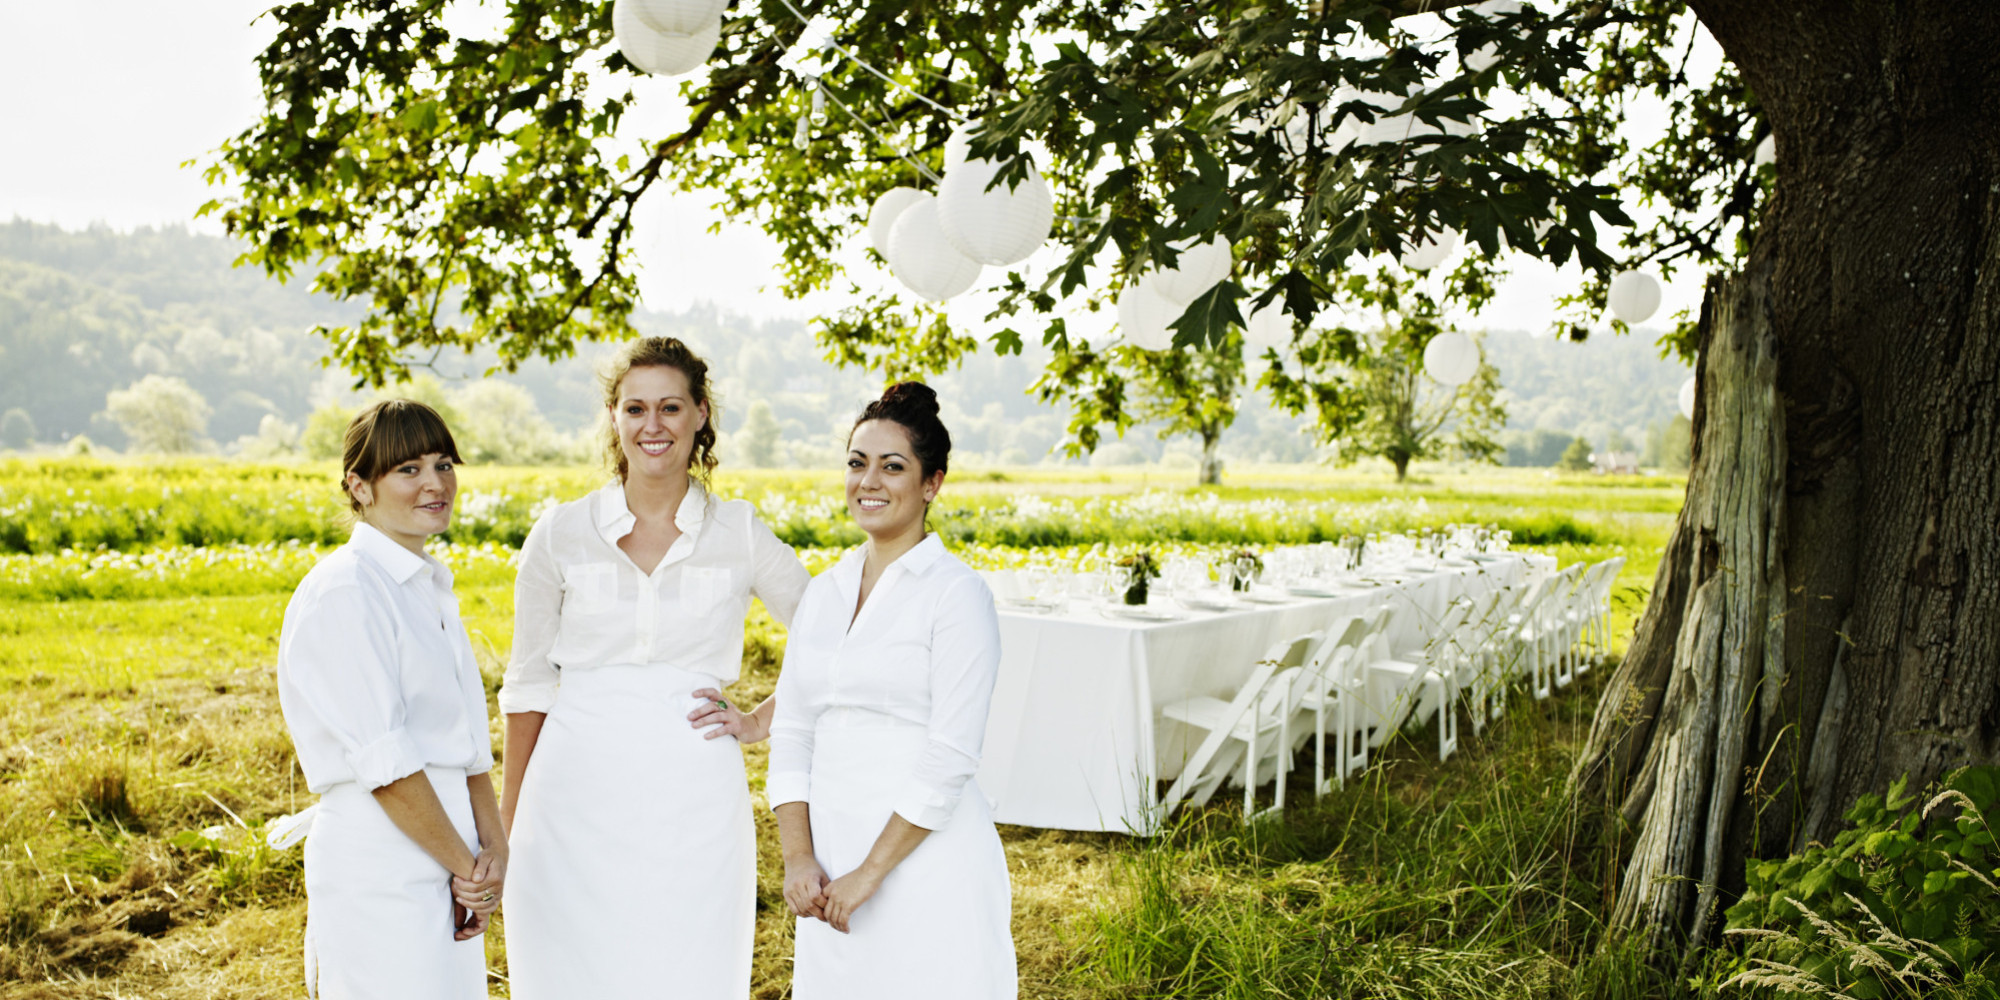 How to Find and Get a Real Wedding or Event Planning Internship